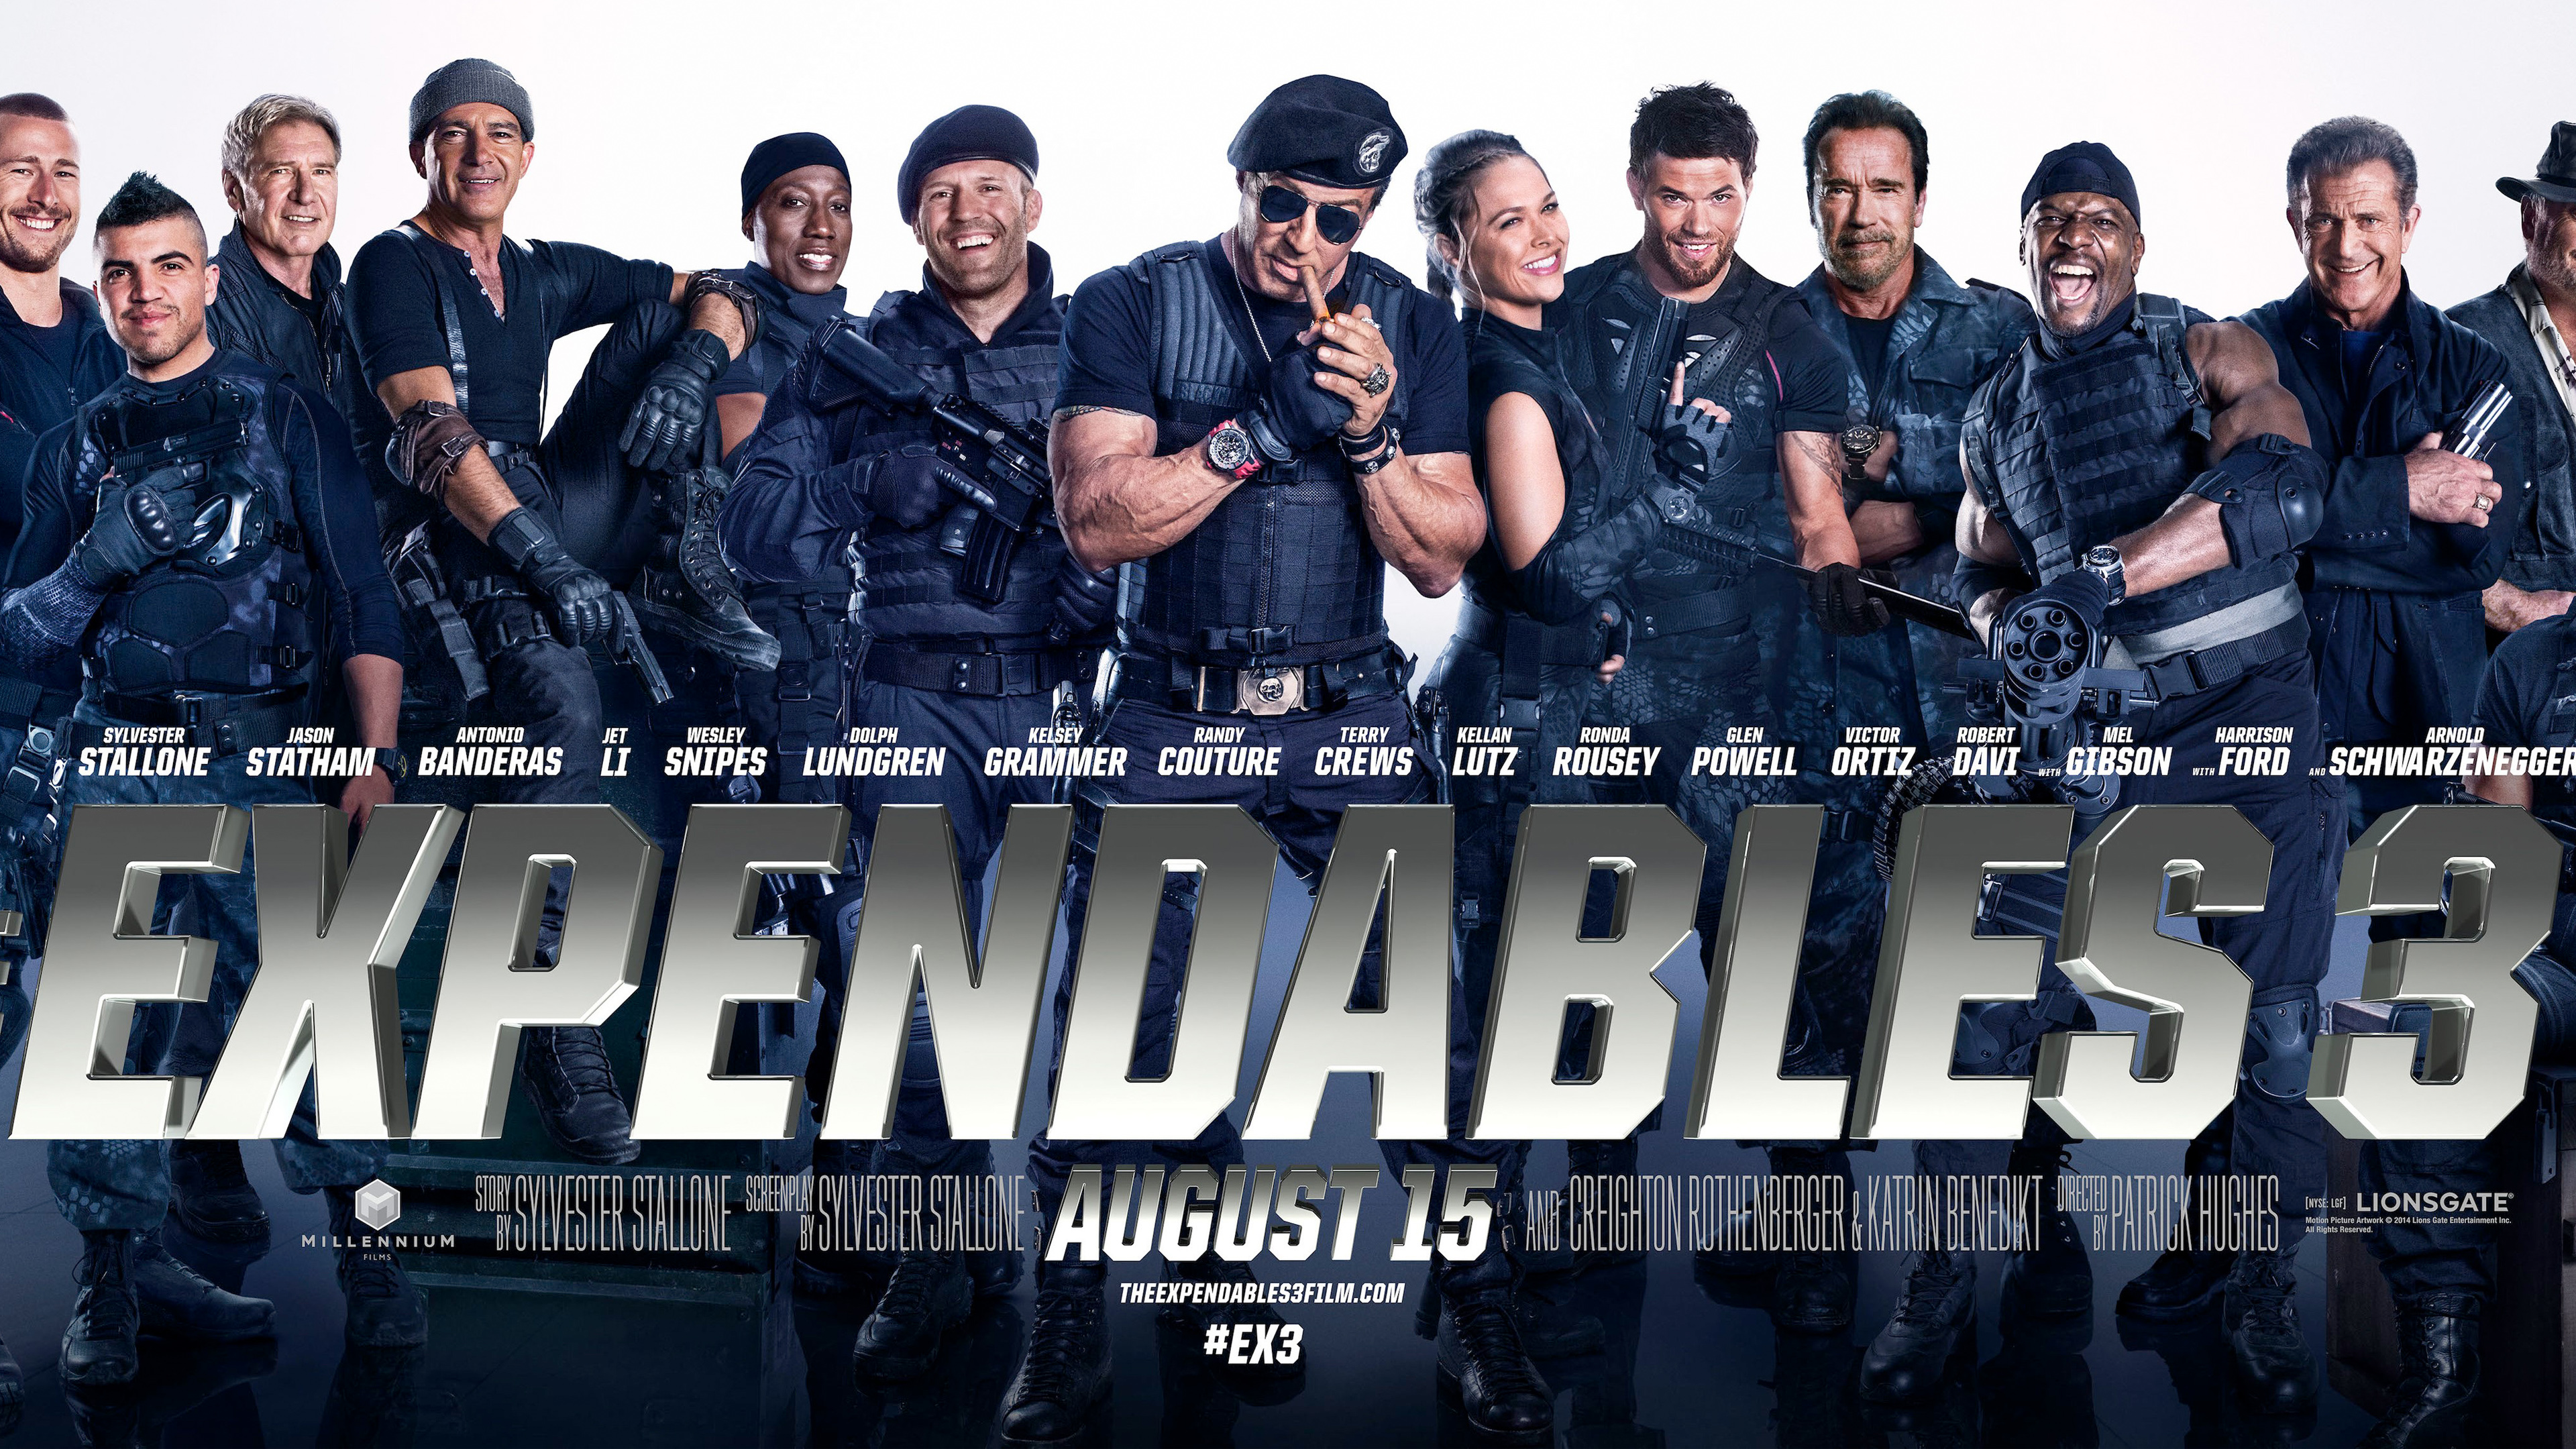 HD Wallpapers The Expendables 3 Banner